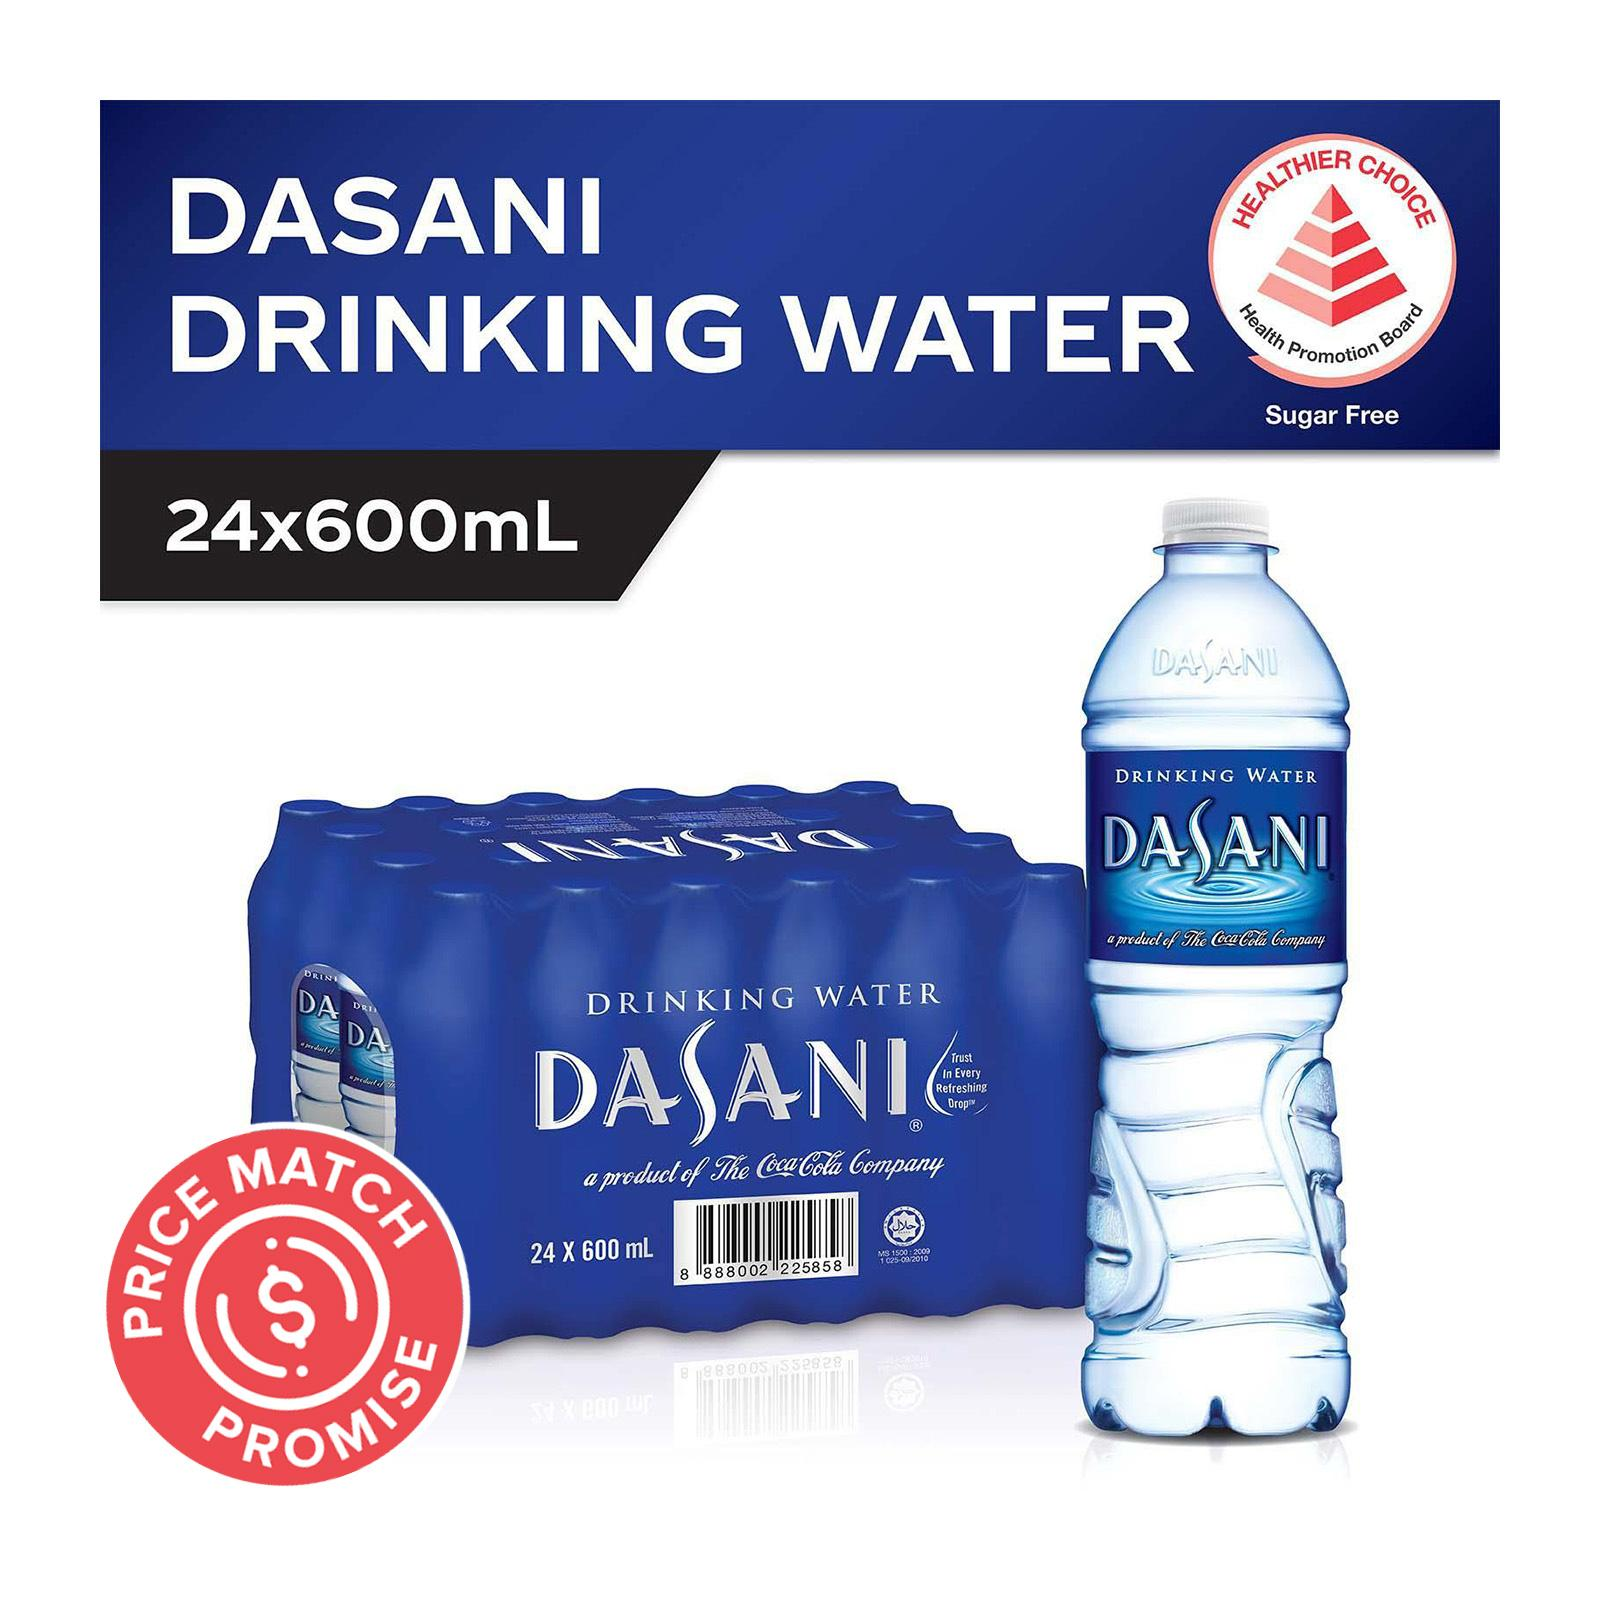 Dasani Drinking Water (24 x 600ml) - Case